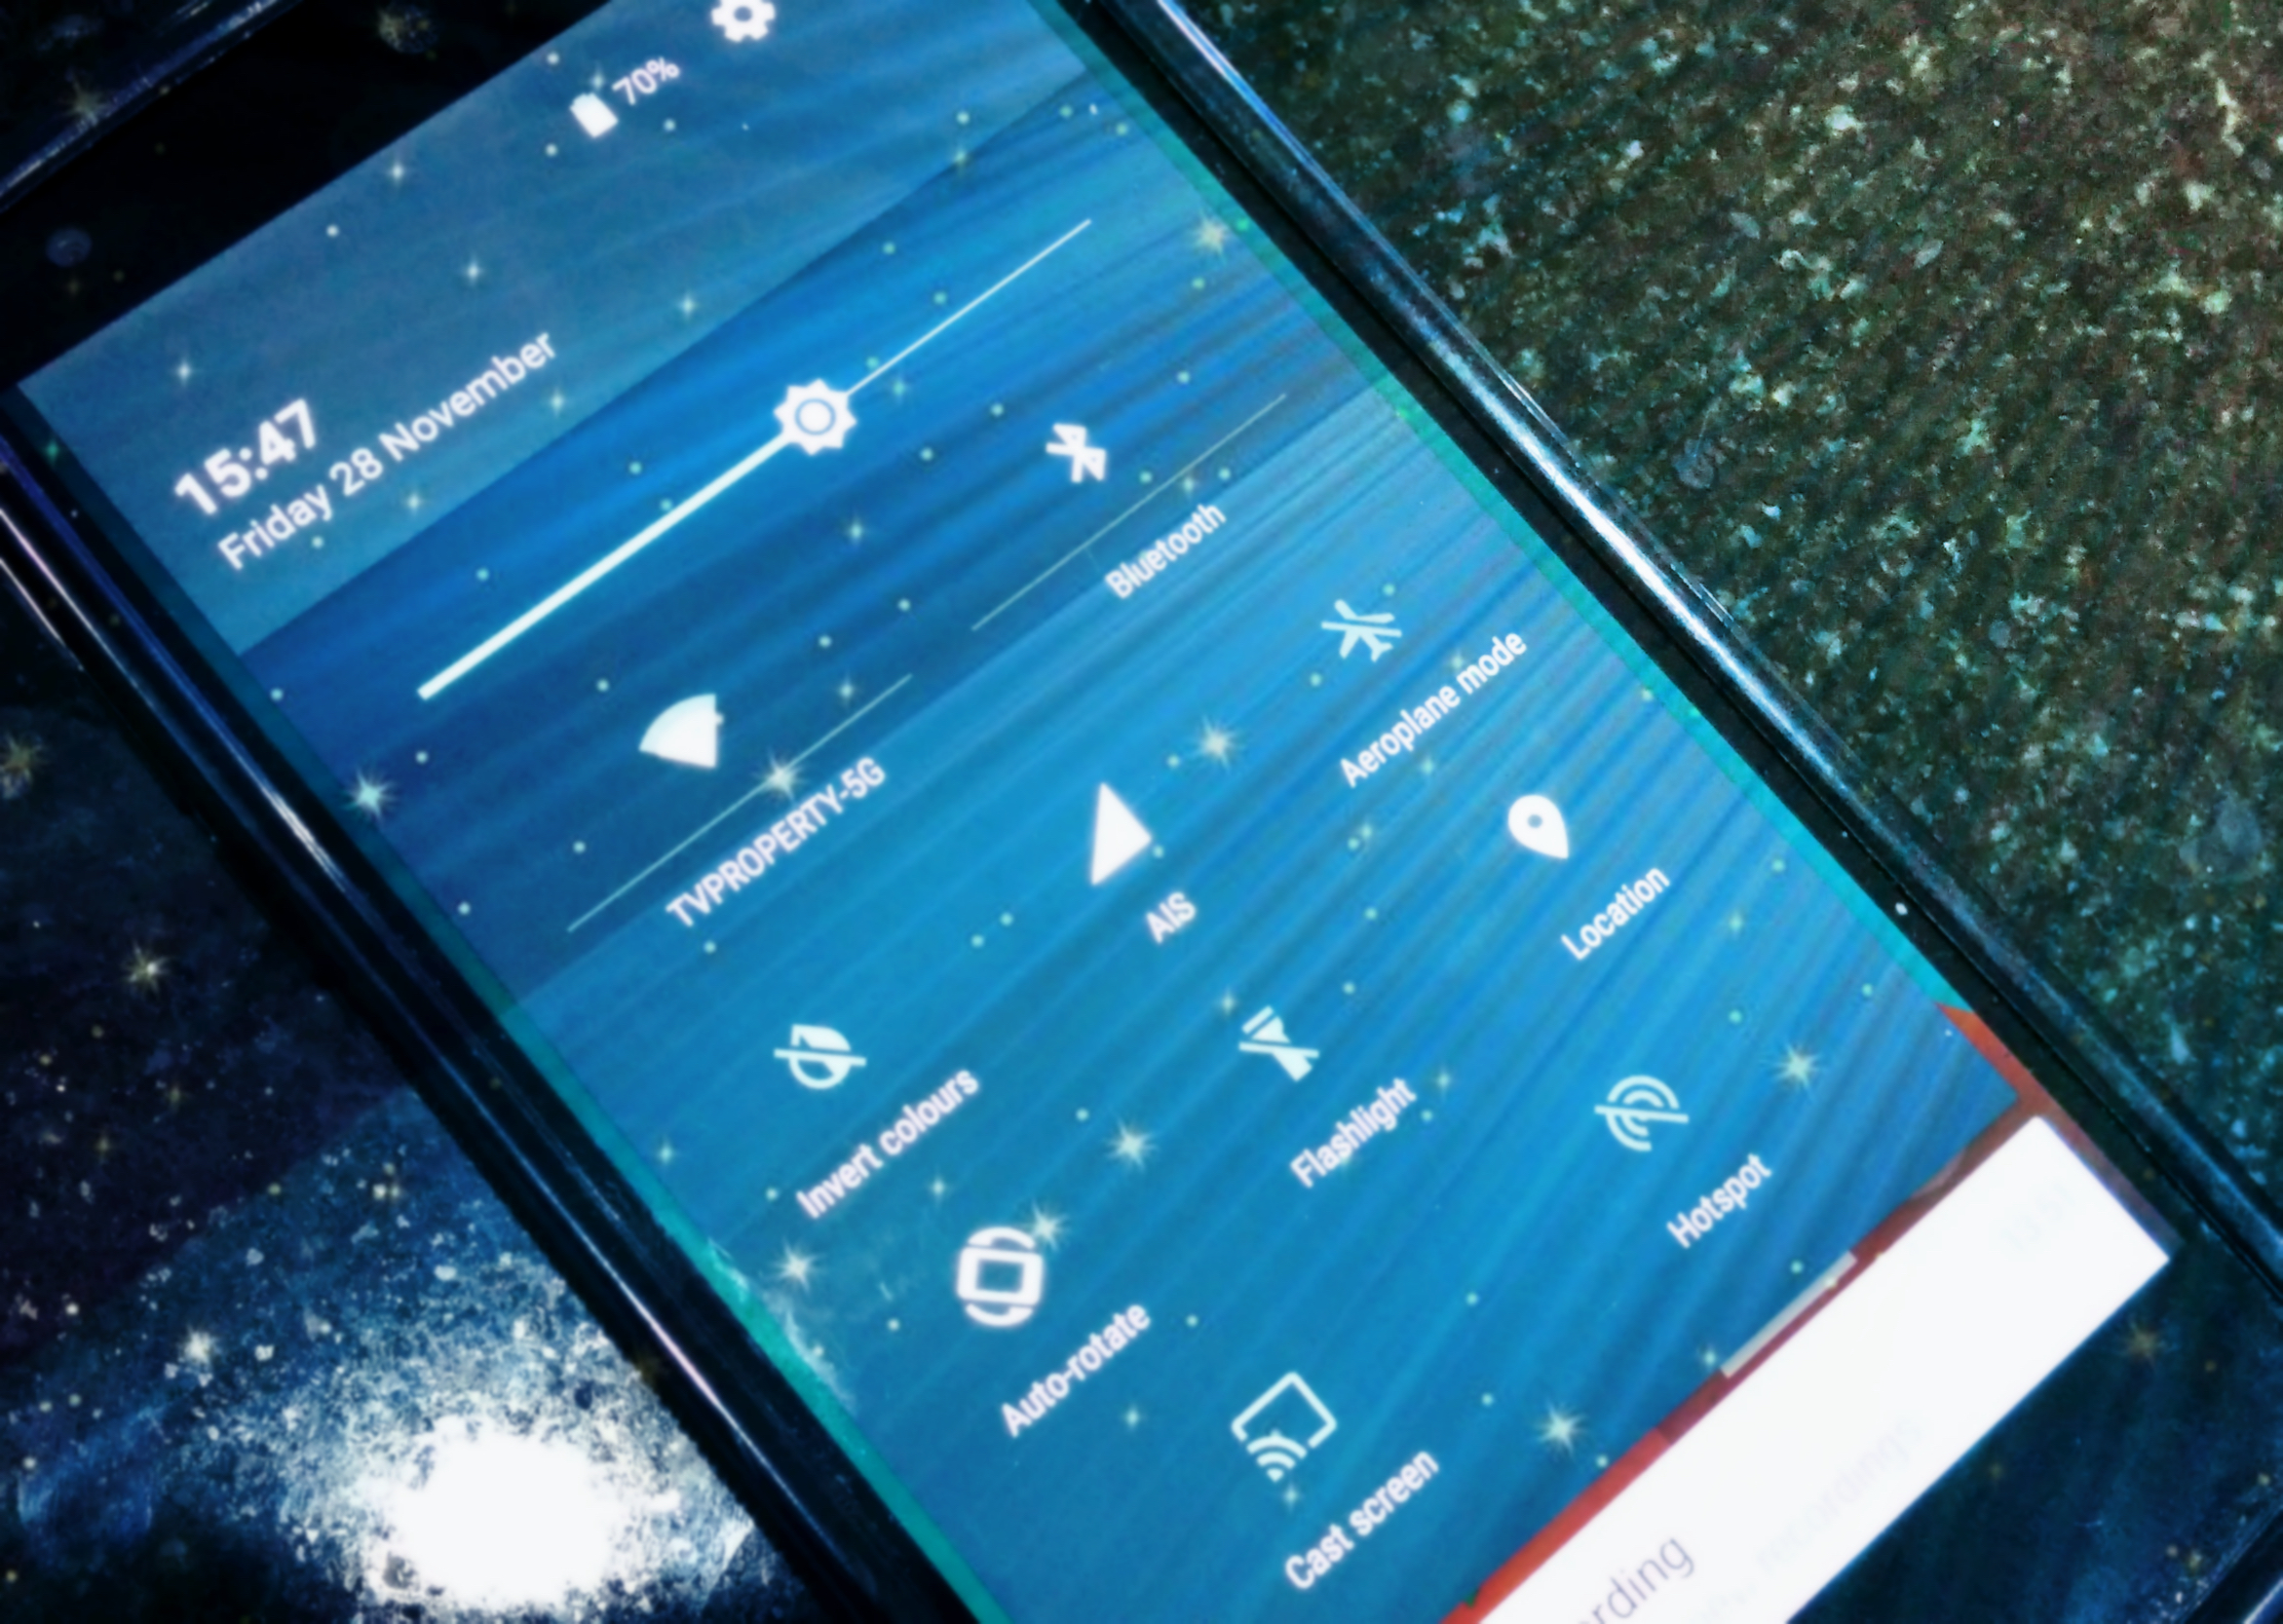 Rent To Own Smartphones >> Where is screen rotation in Android 5.0 Lollipop?